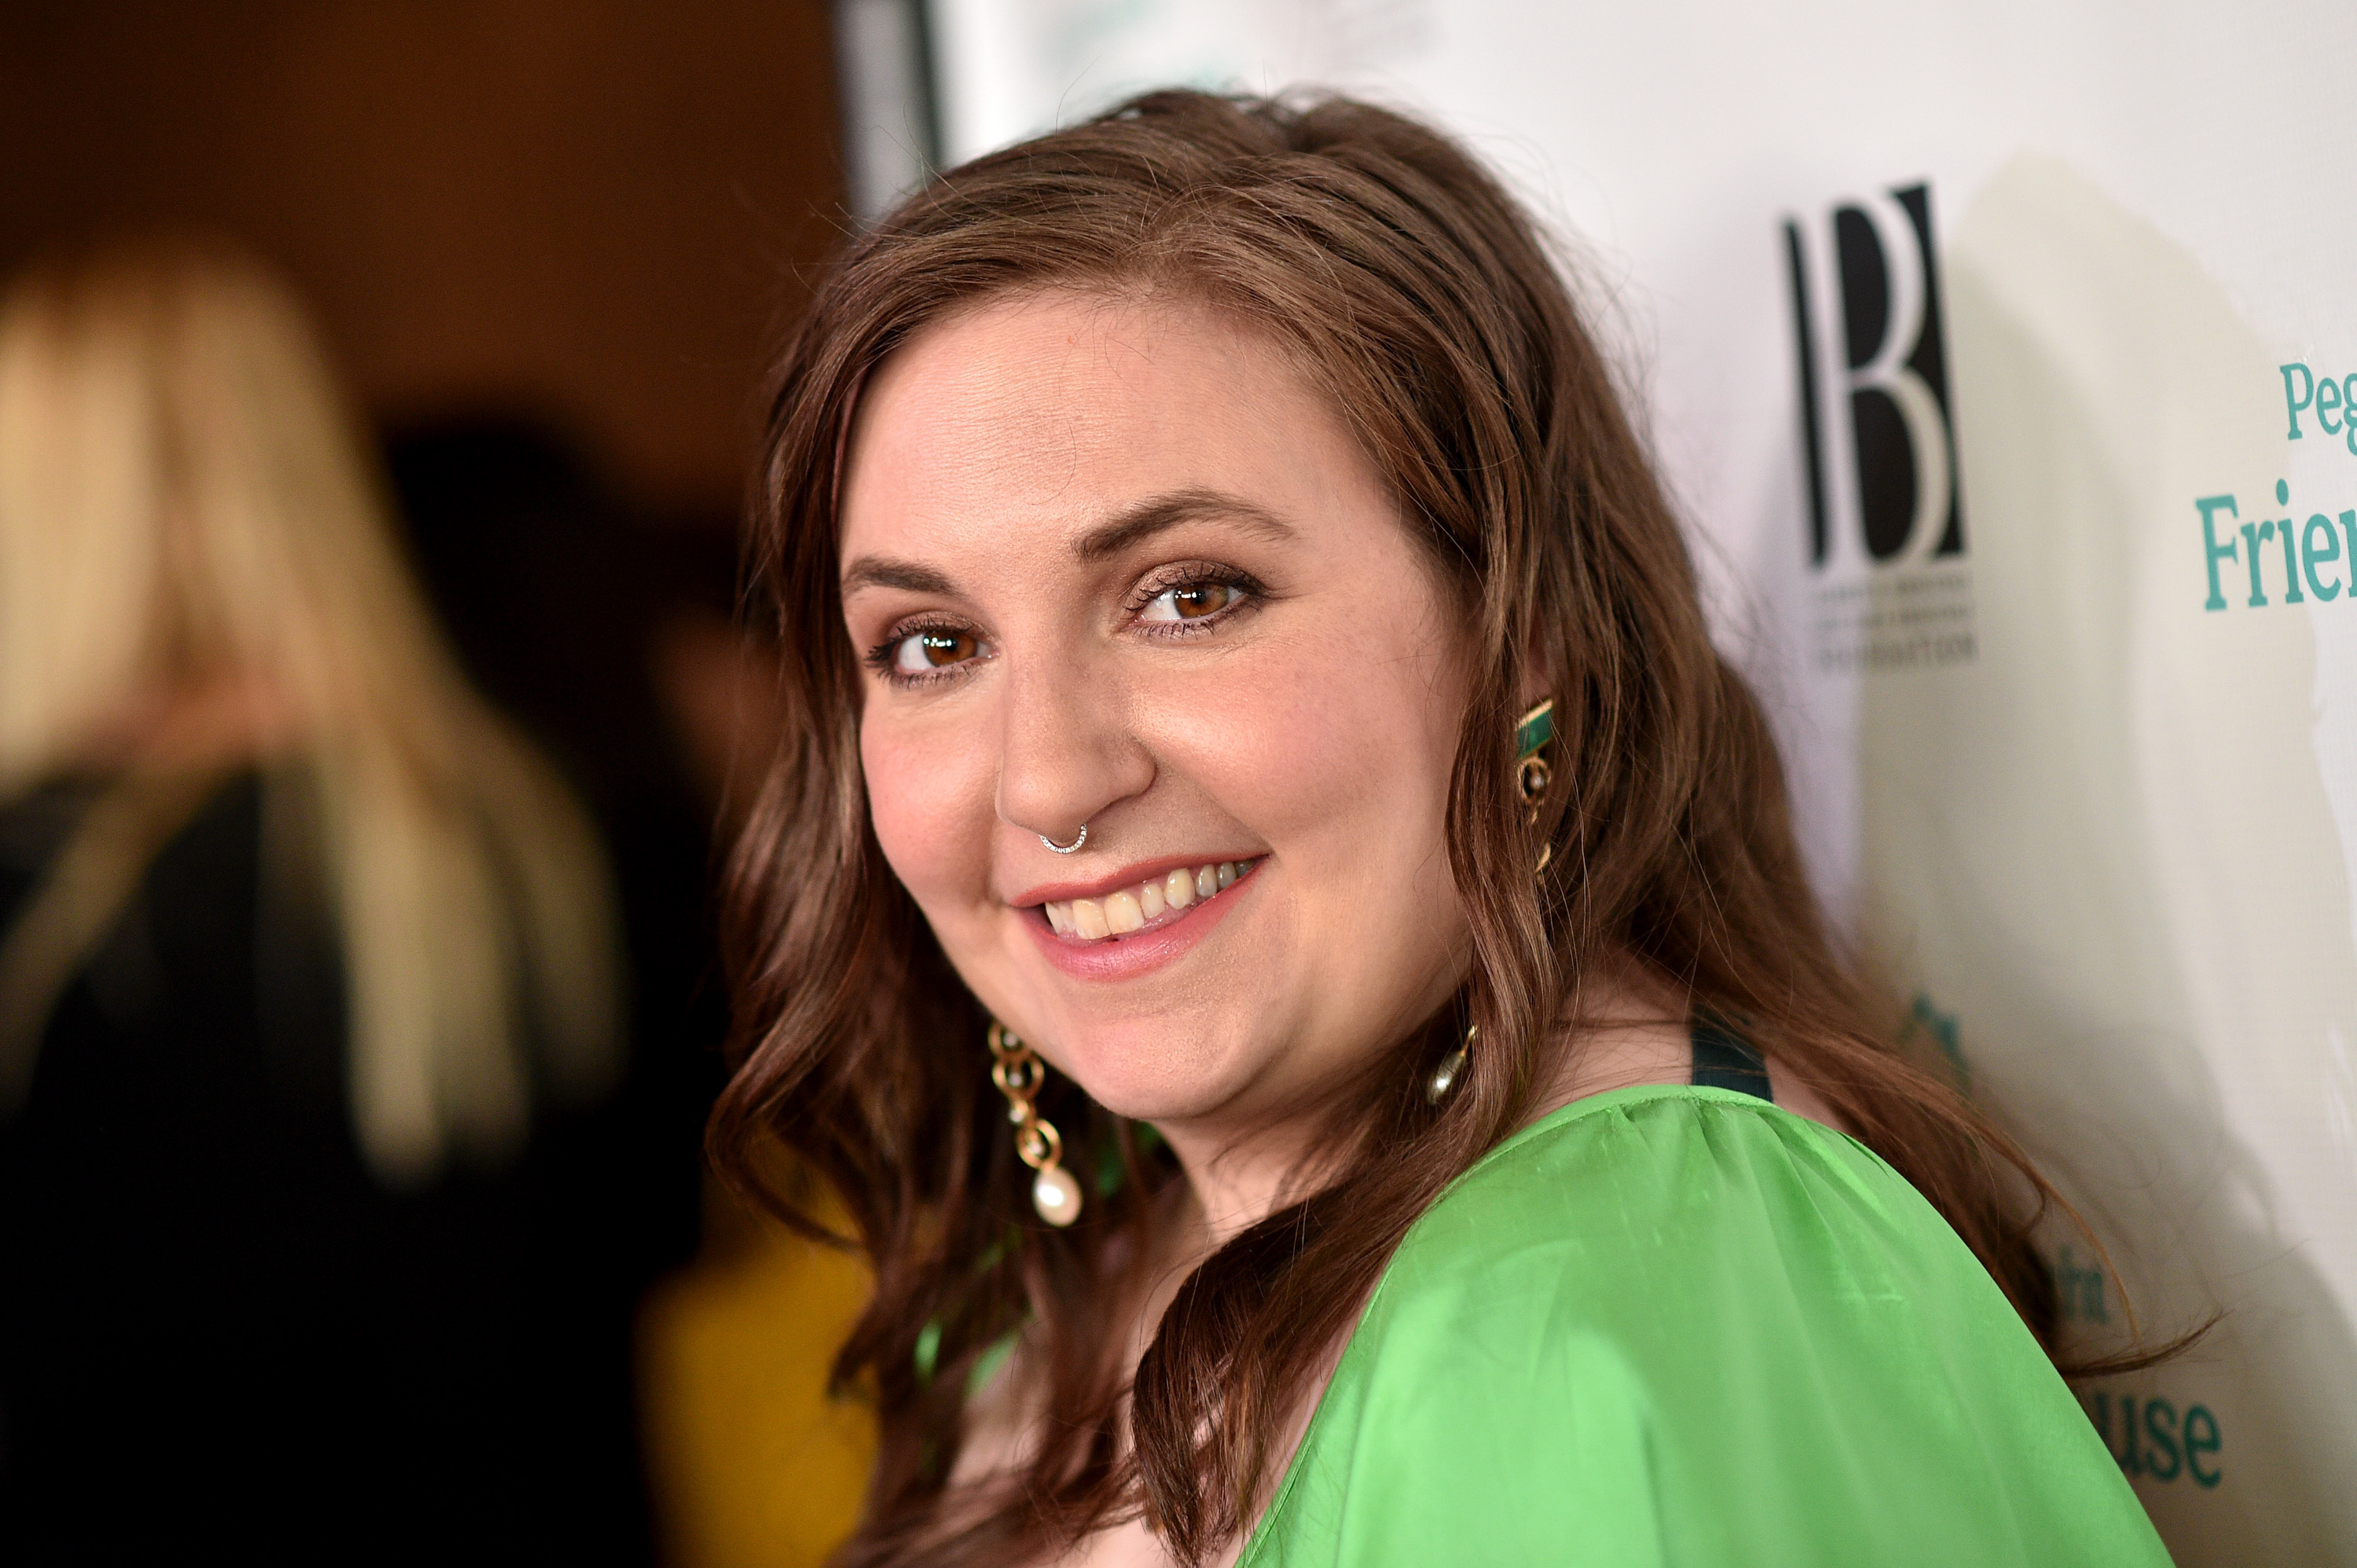 Lena Dunham Opens Up About Addiction and Rehab: 'I Thought It Was the End of My Life'